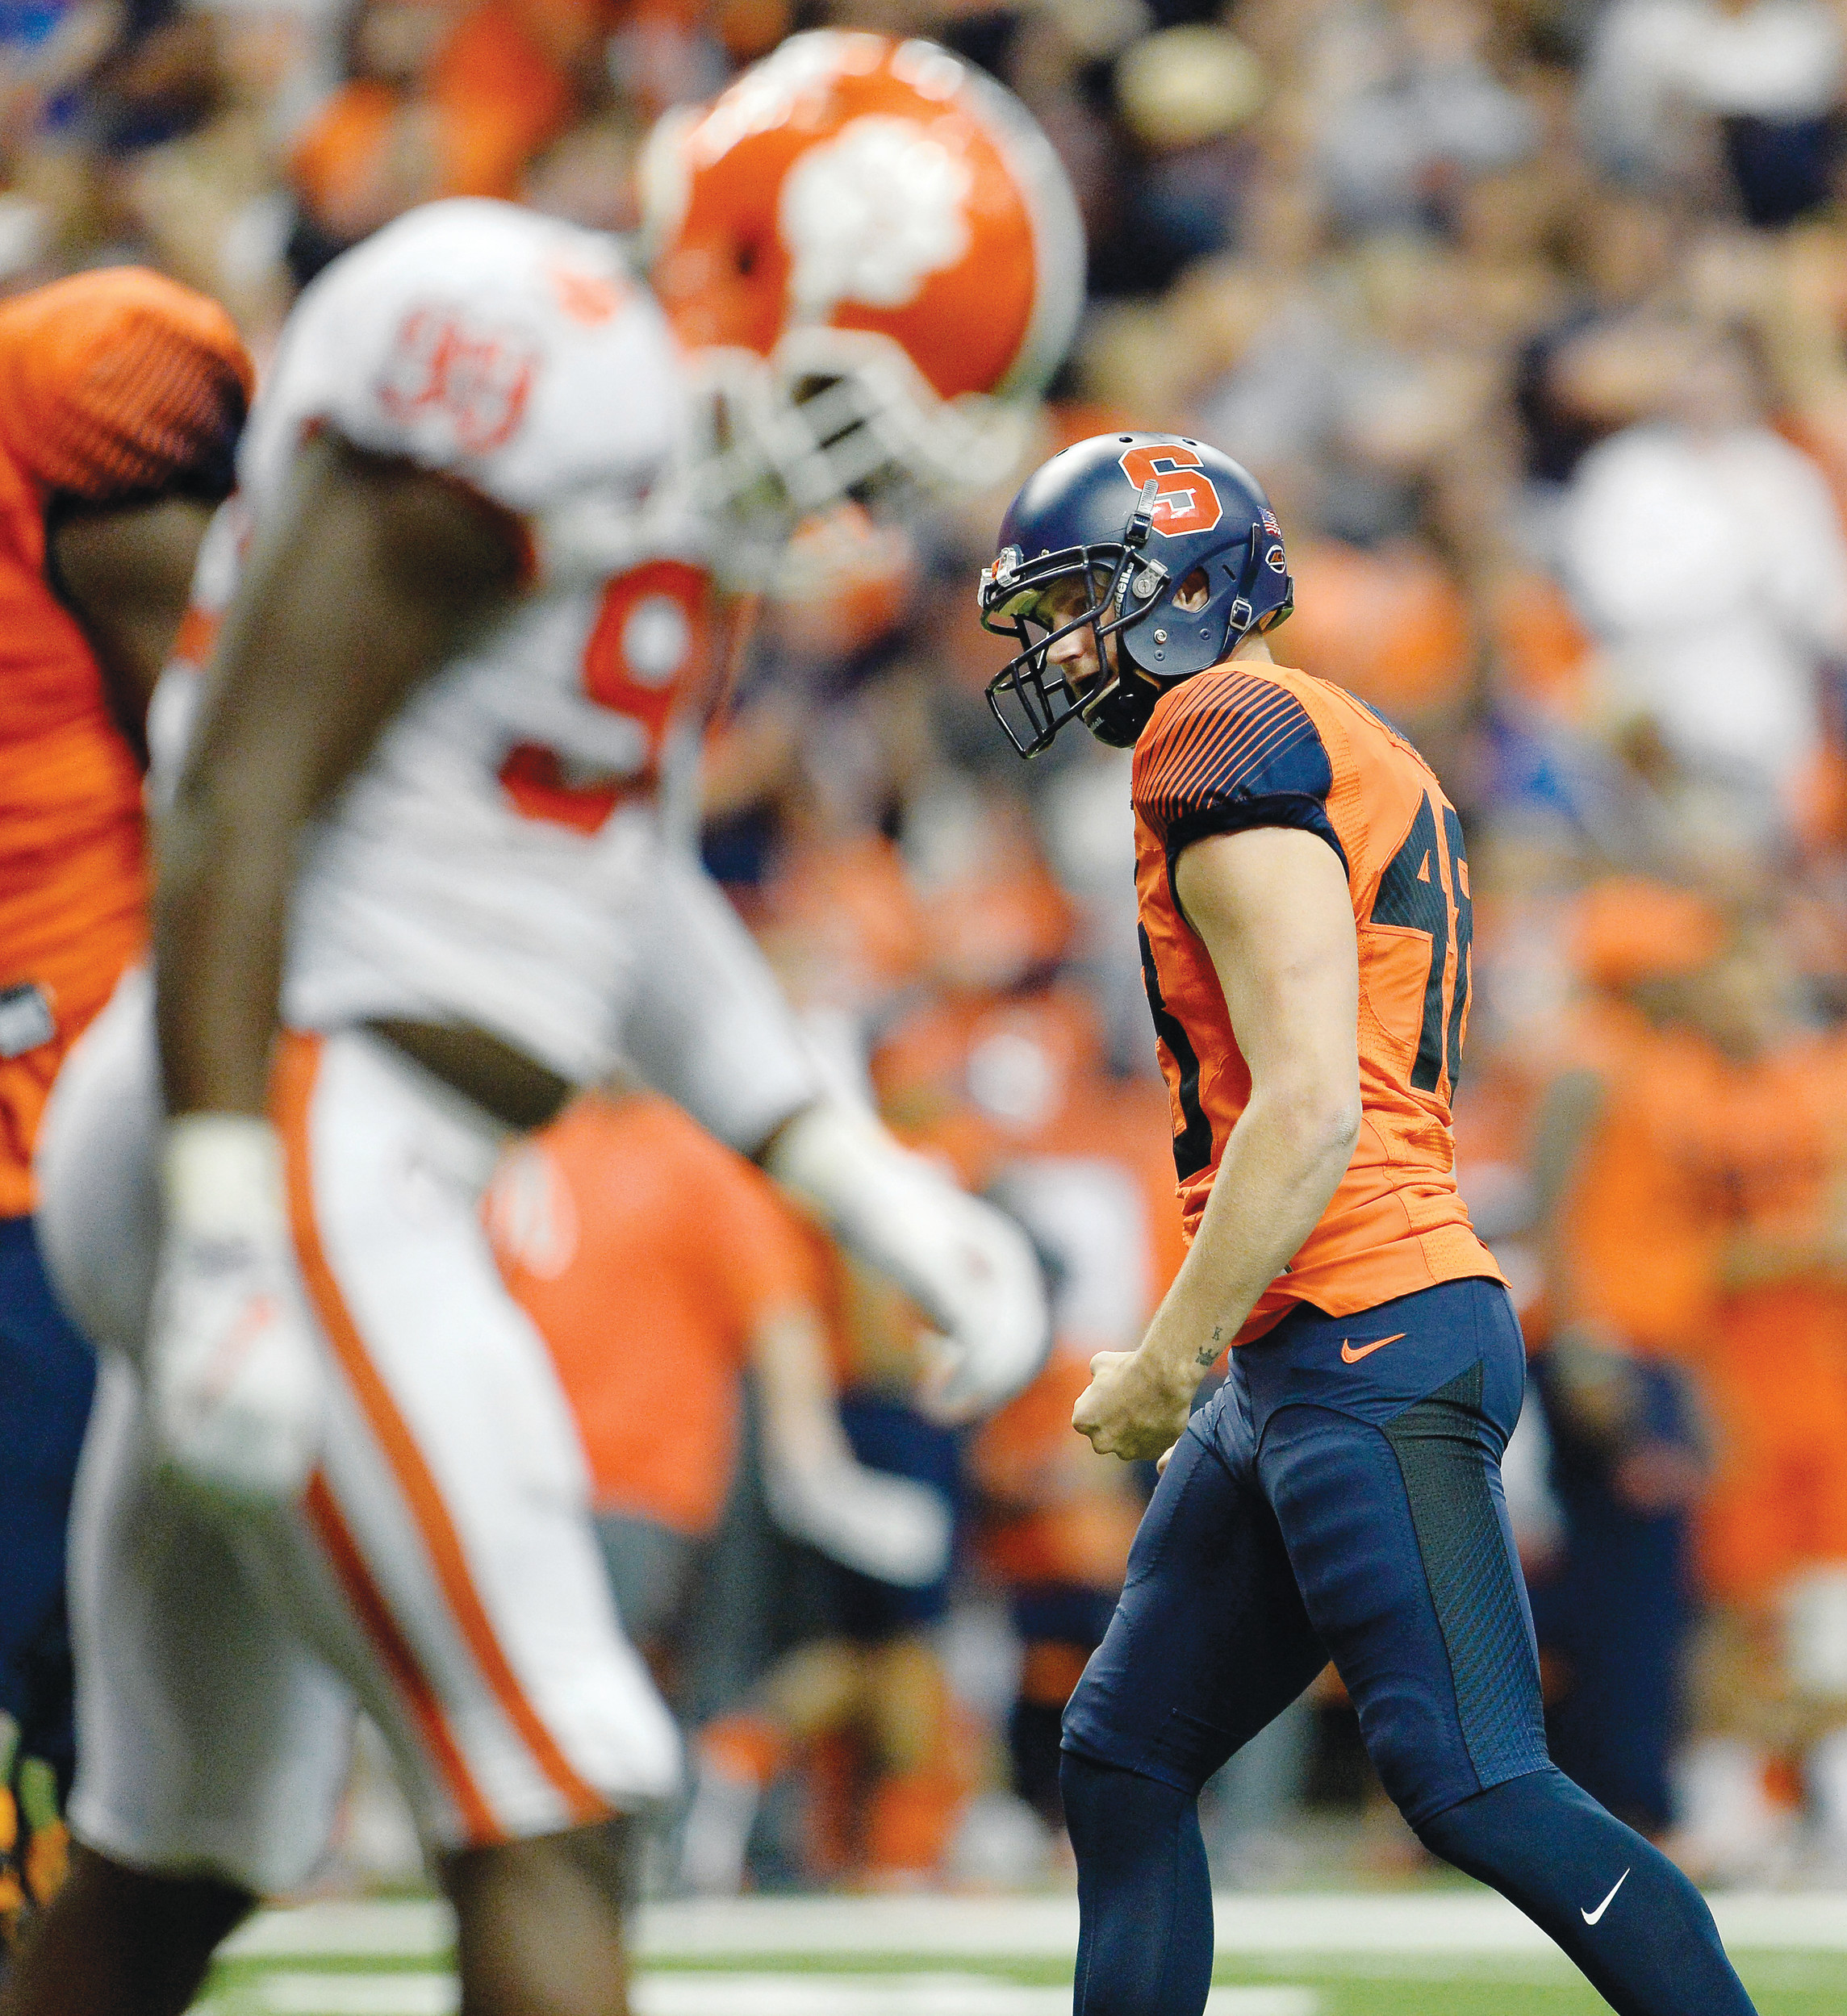 Syracuse placekicker Cole Murphy (48) reacts to his go-ahead field goal during the second half of Syracuse's 27-24 upset victory over  No. 2 Clemson on Friday in Syracuse, N.Y.